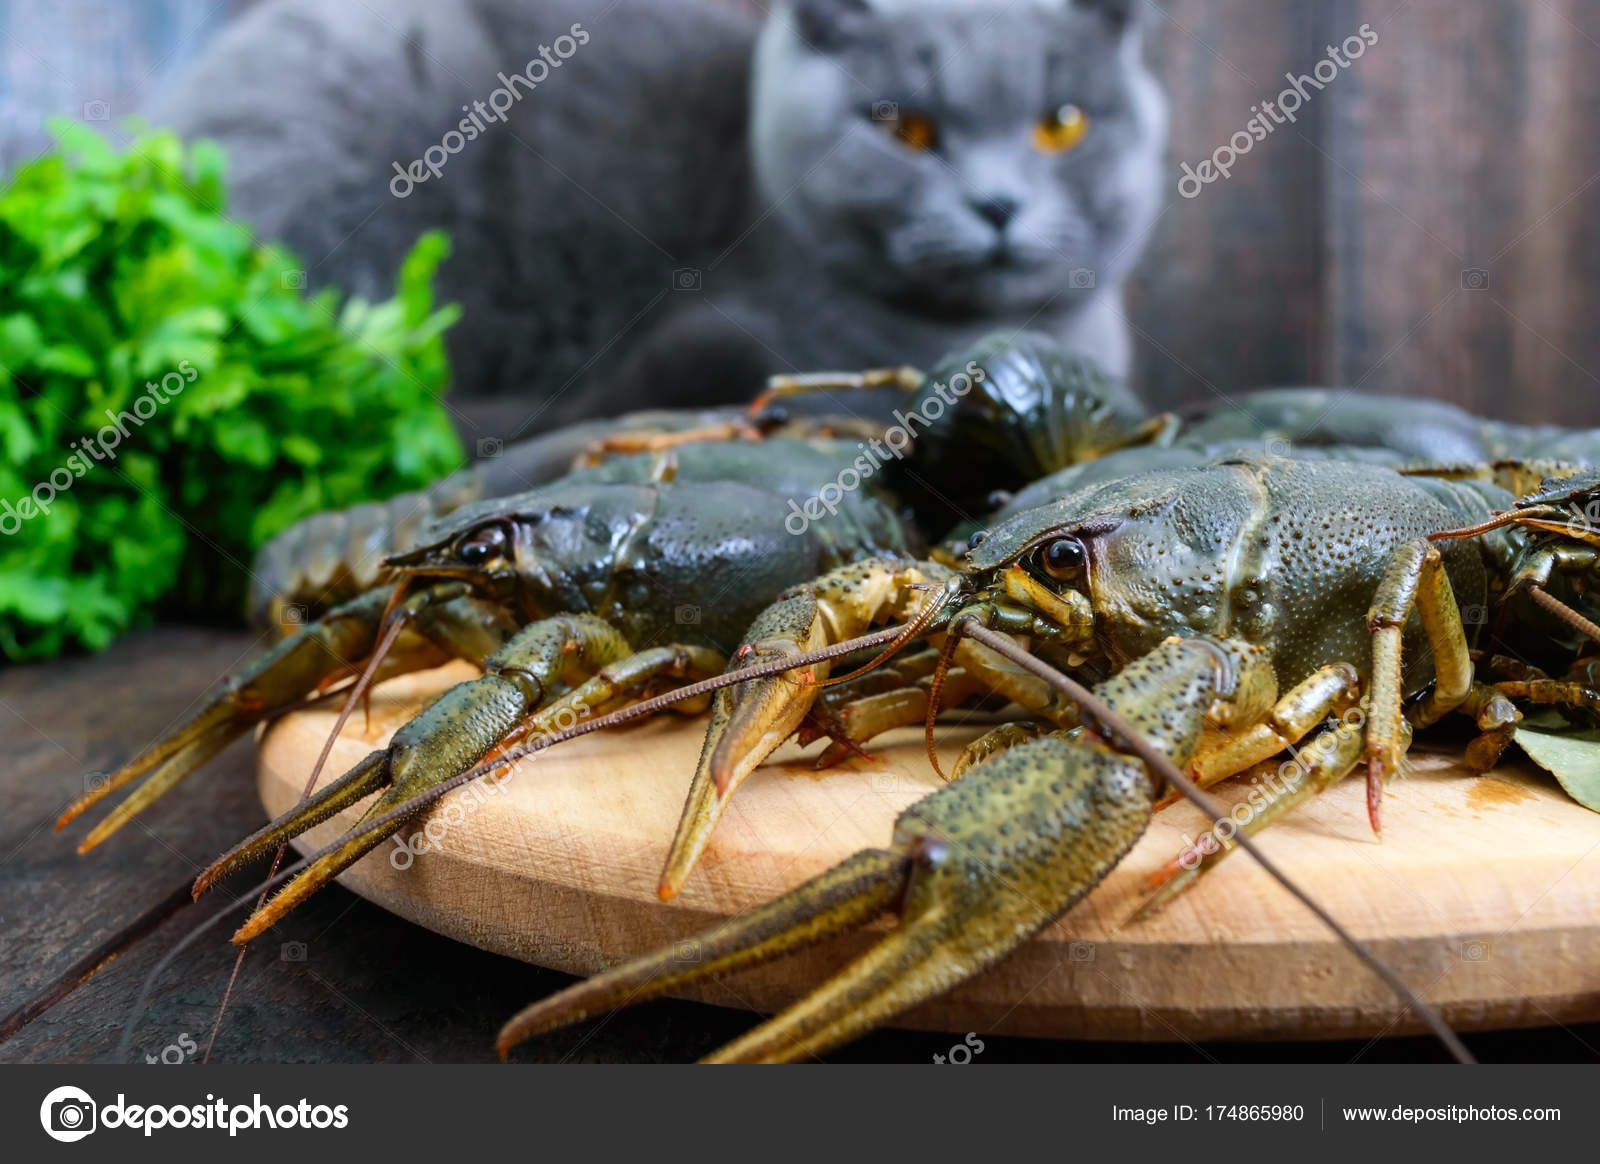 Live Crawfish Wooden Tray Foreground Gray Cat Looking Fresh